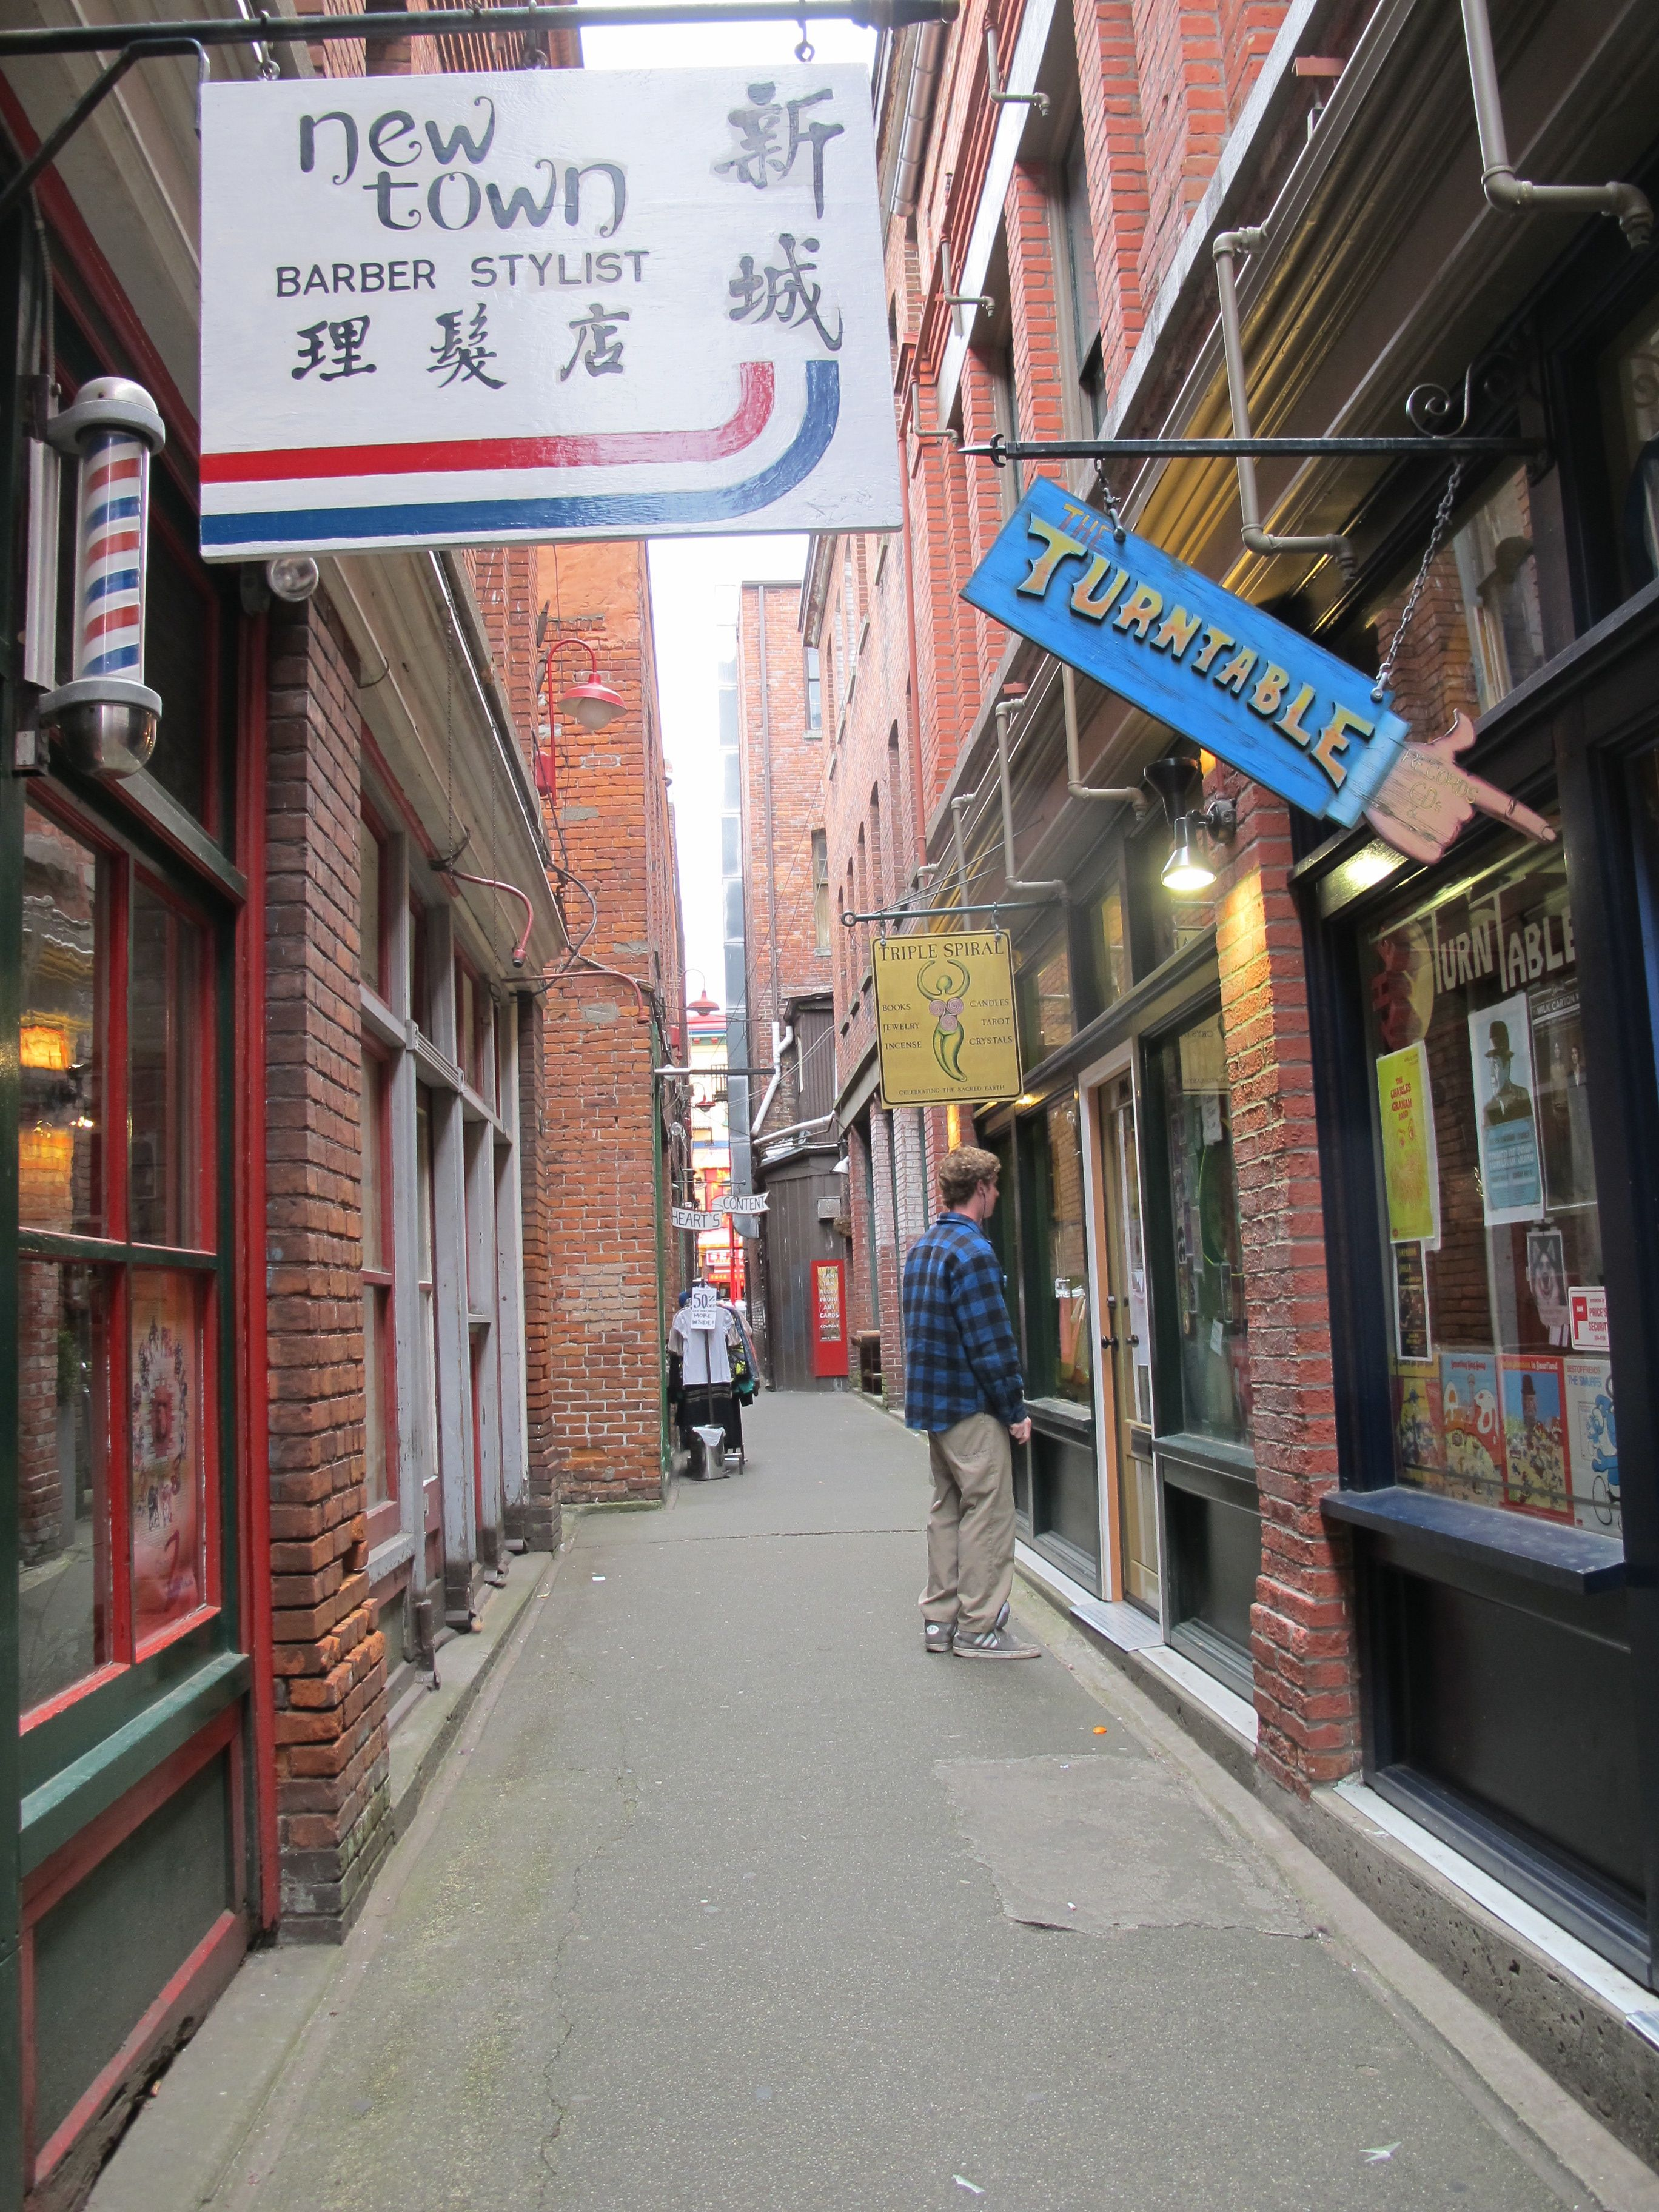 Fan Tan Alley is an alley in Victoria, British Columbia's